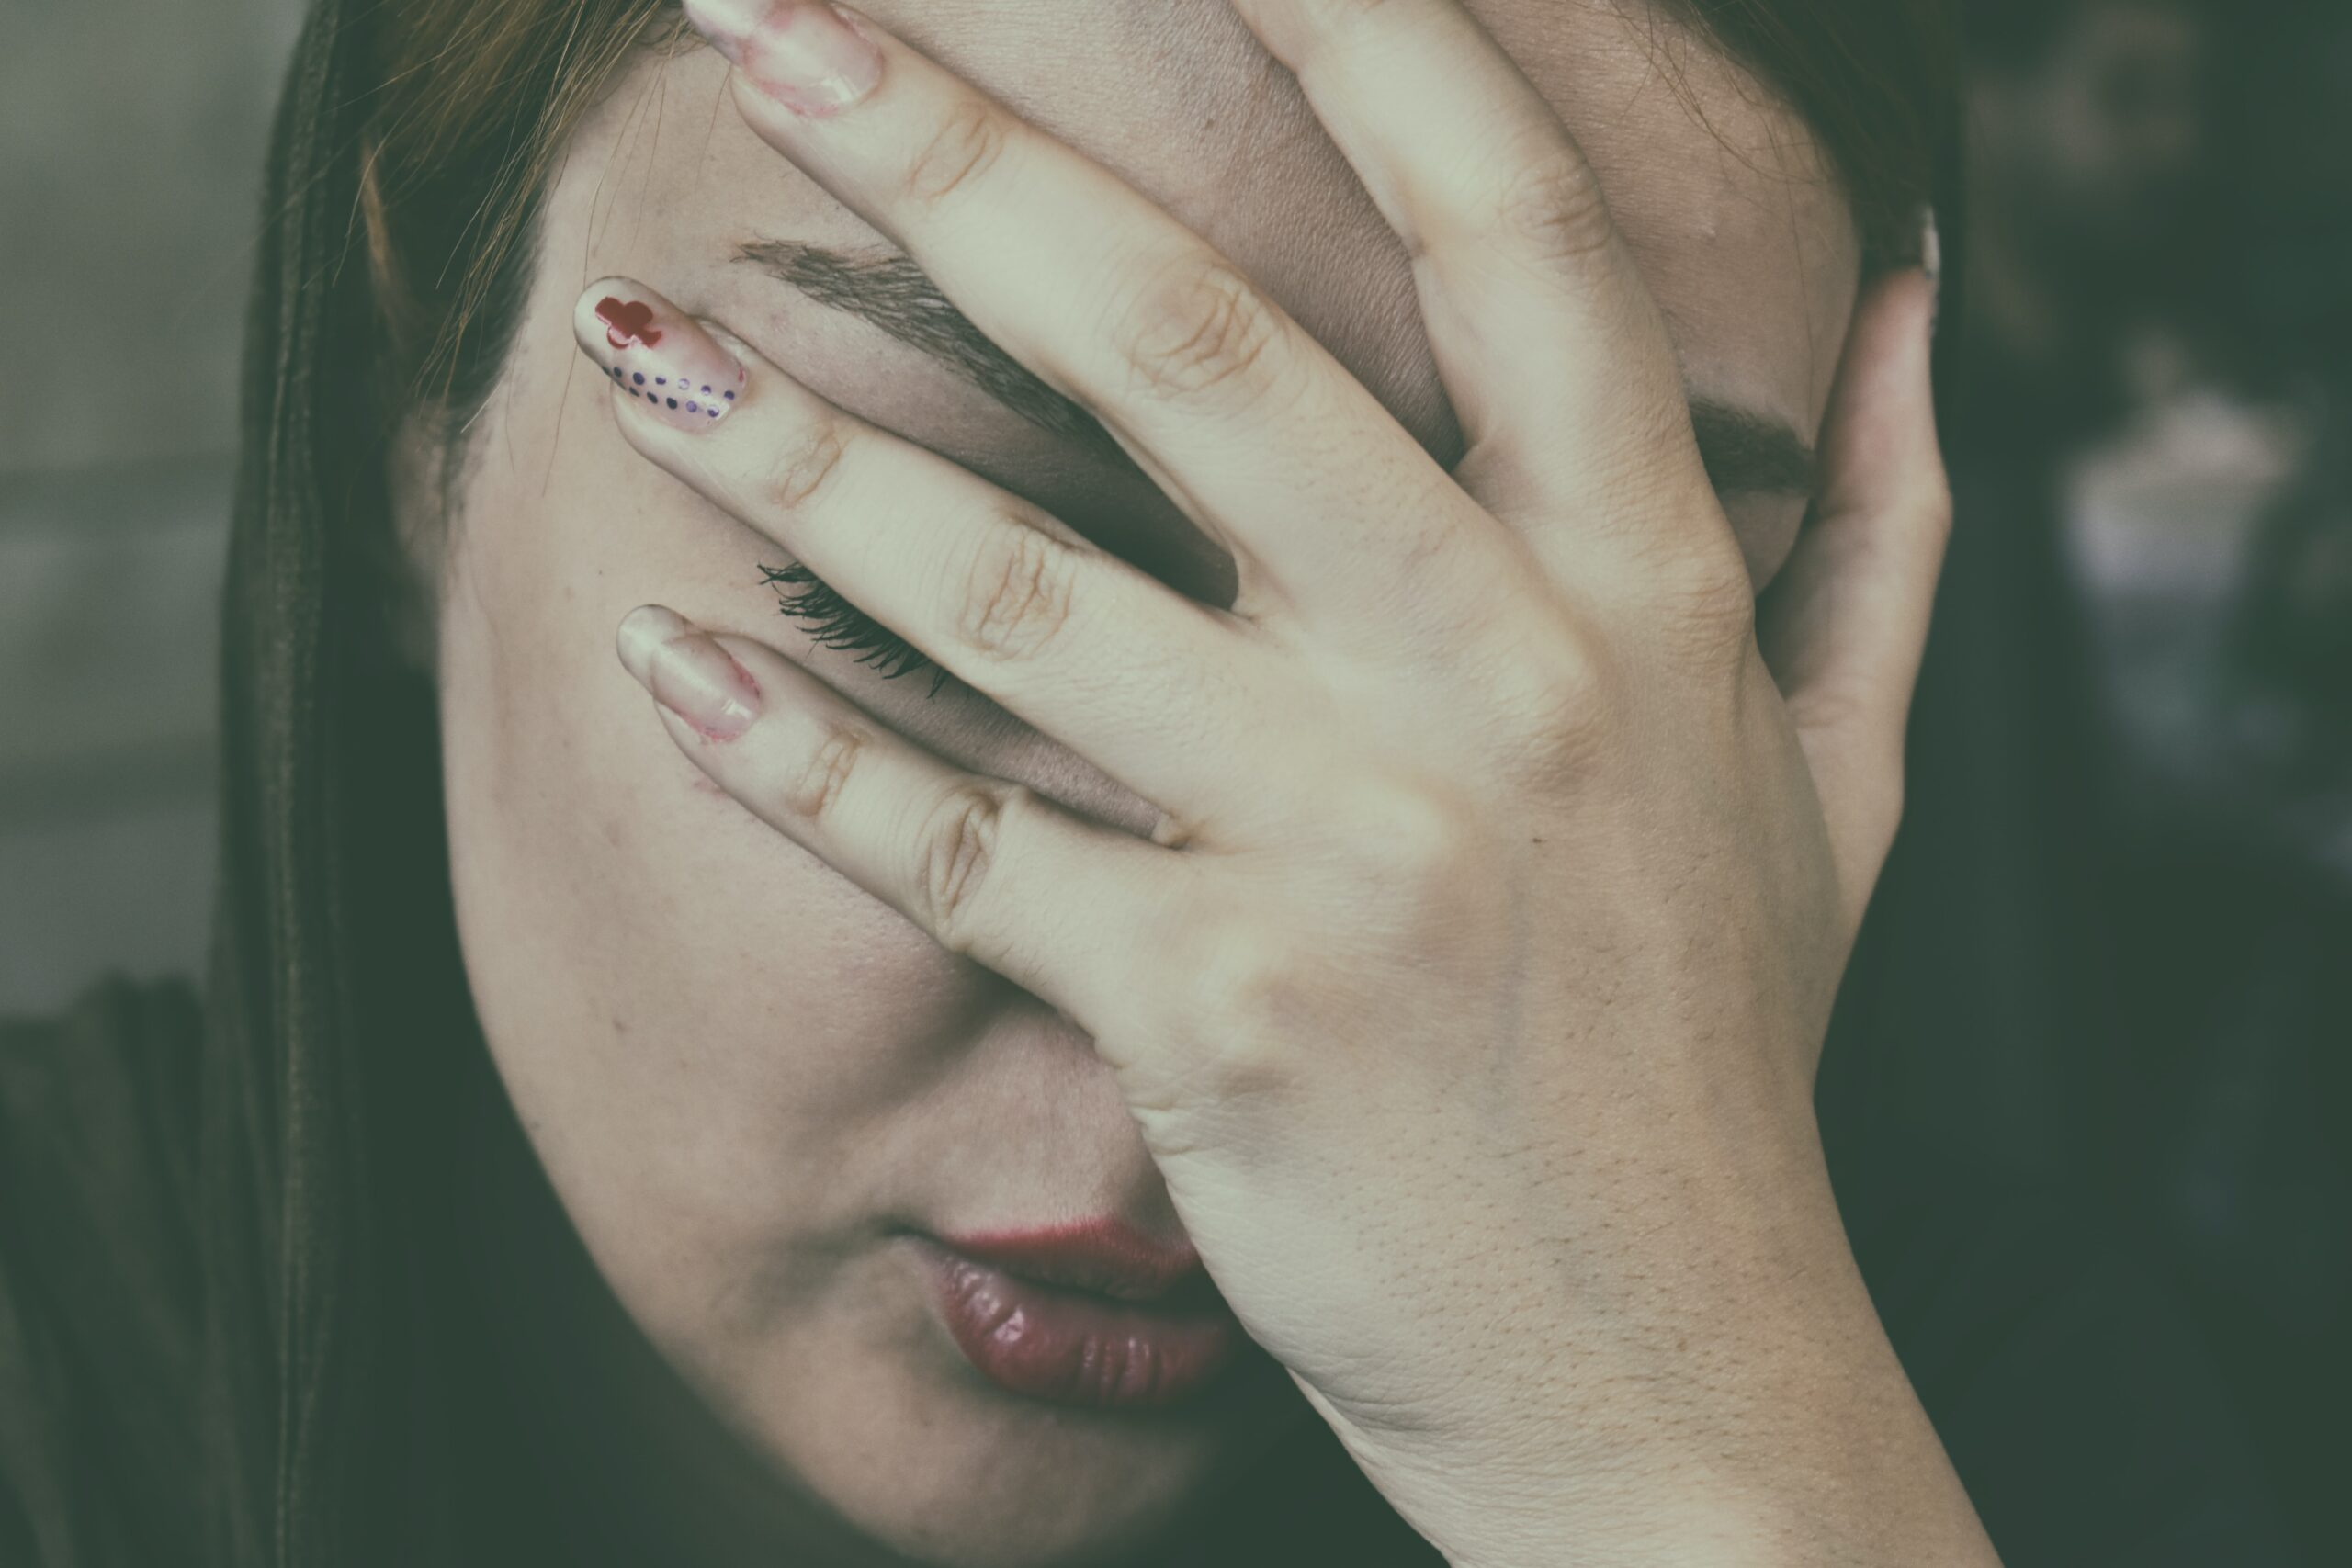 Migraines: They Suck the Life Out of You